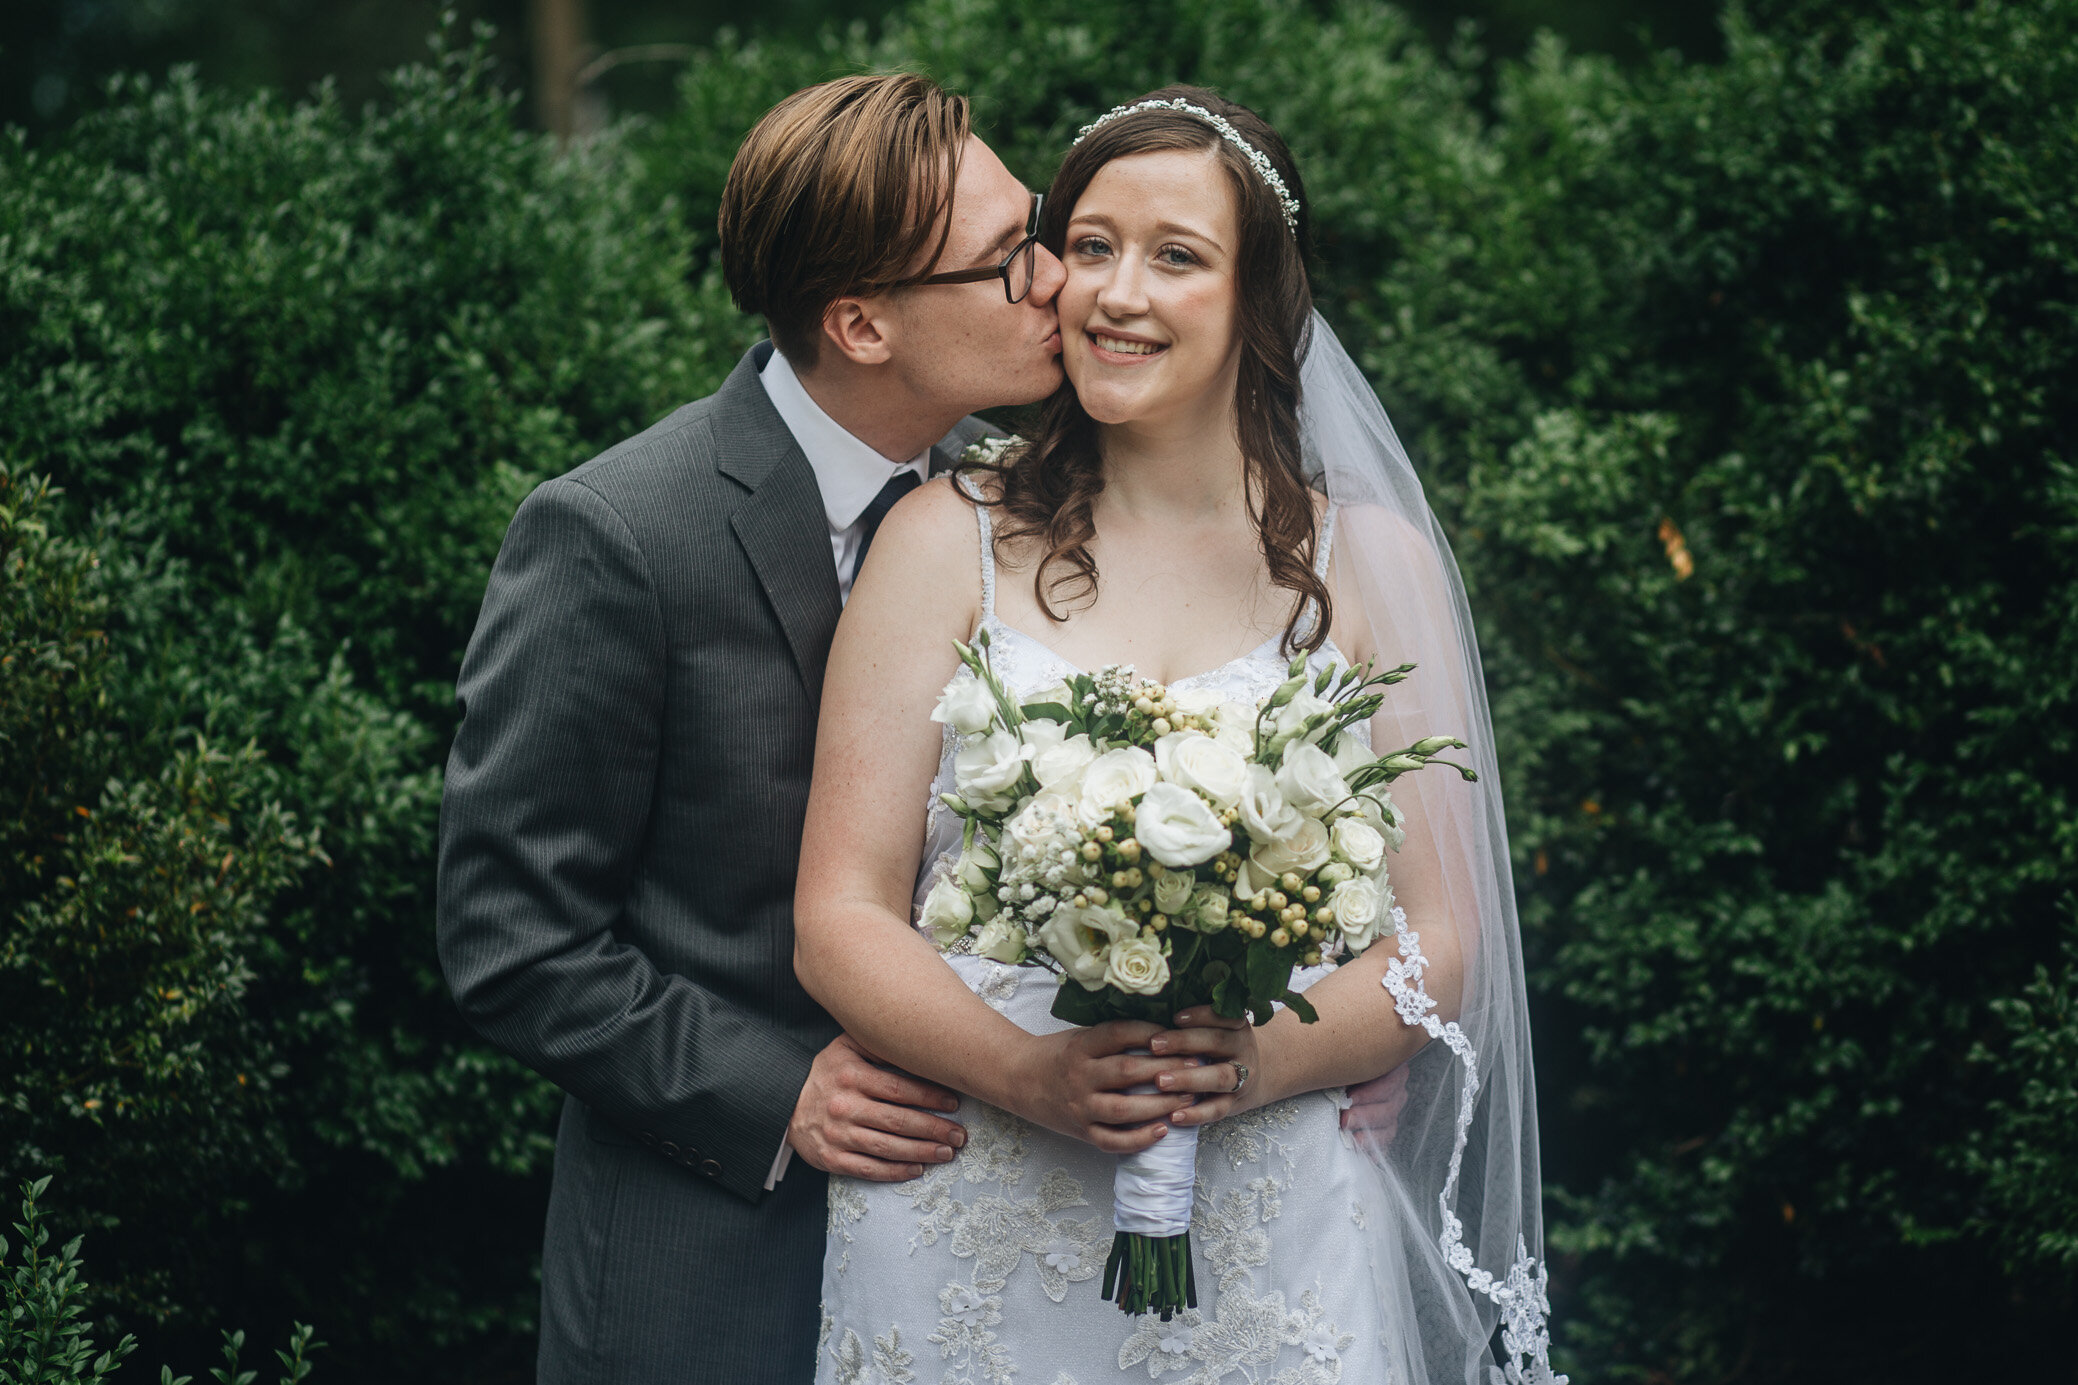 Memphis, Tennessee wedding photography and elopement photography pricing information. Rates start at $1,800.